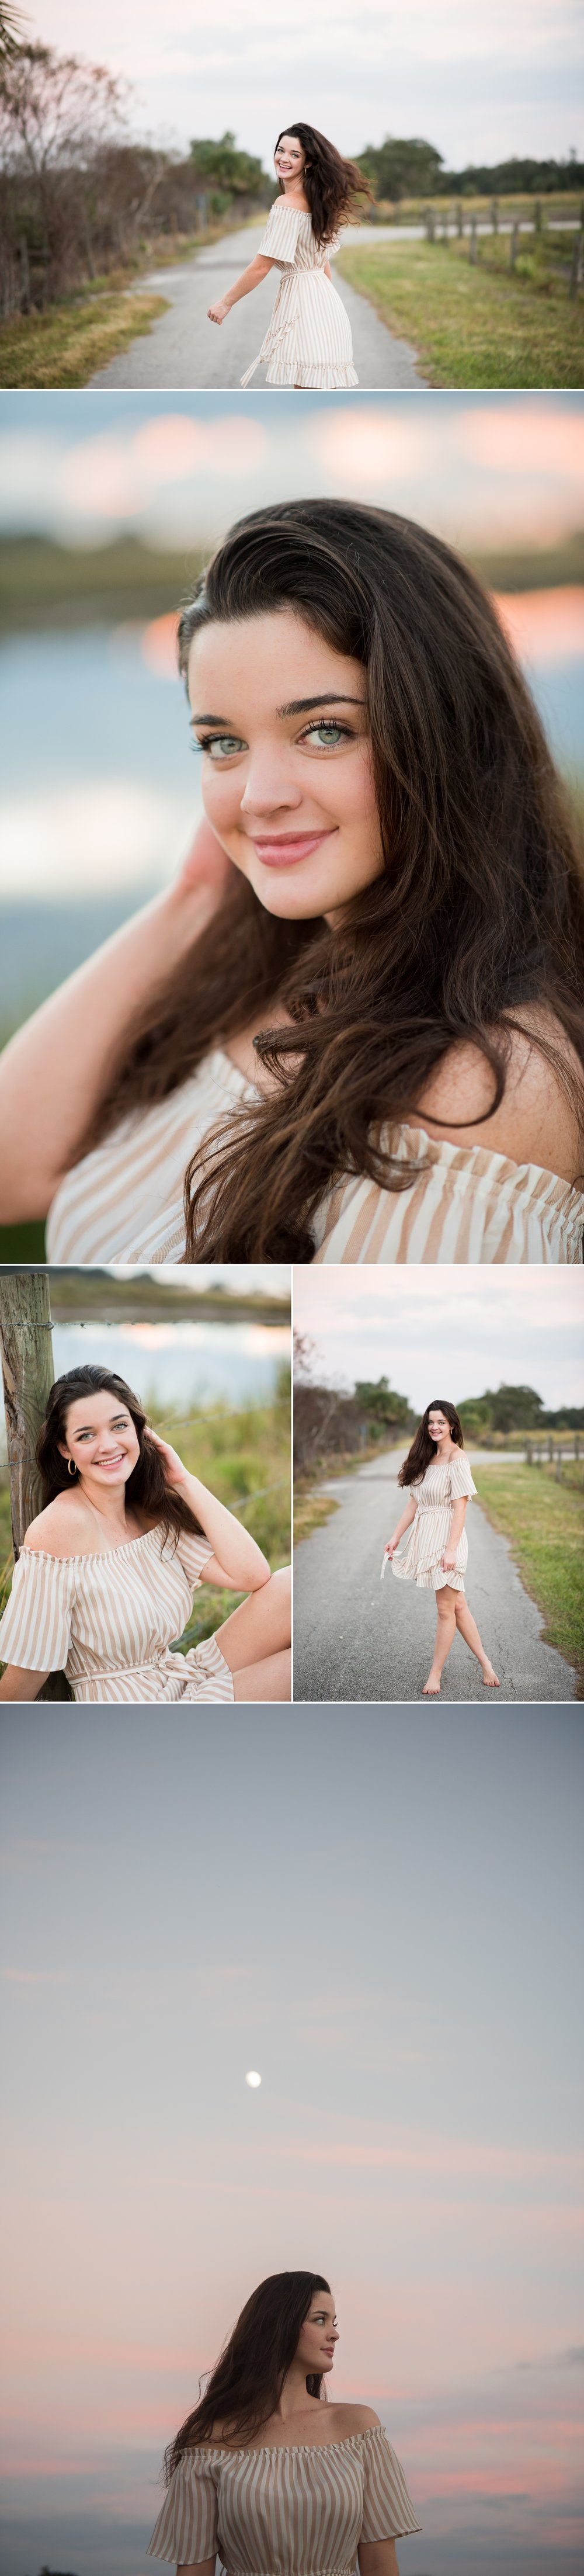 Anna Grace Senior Blog 27.jpg